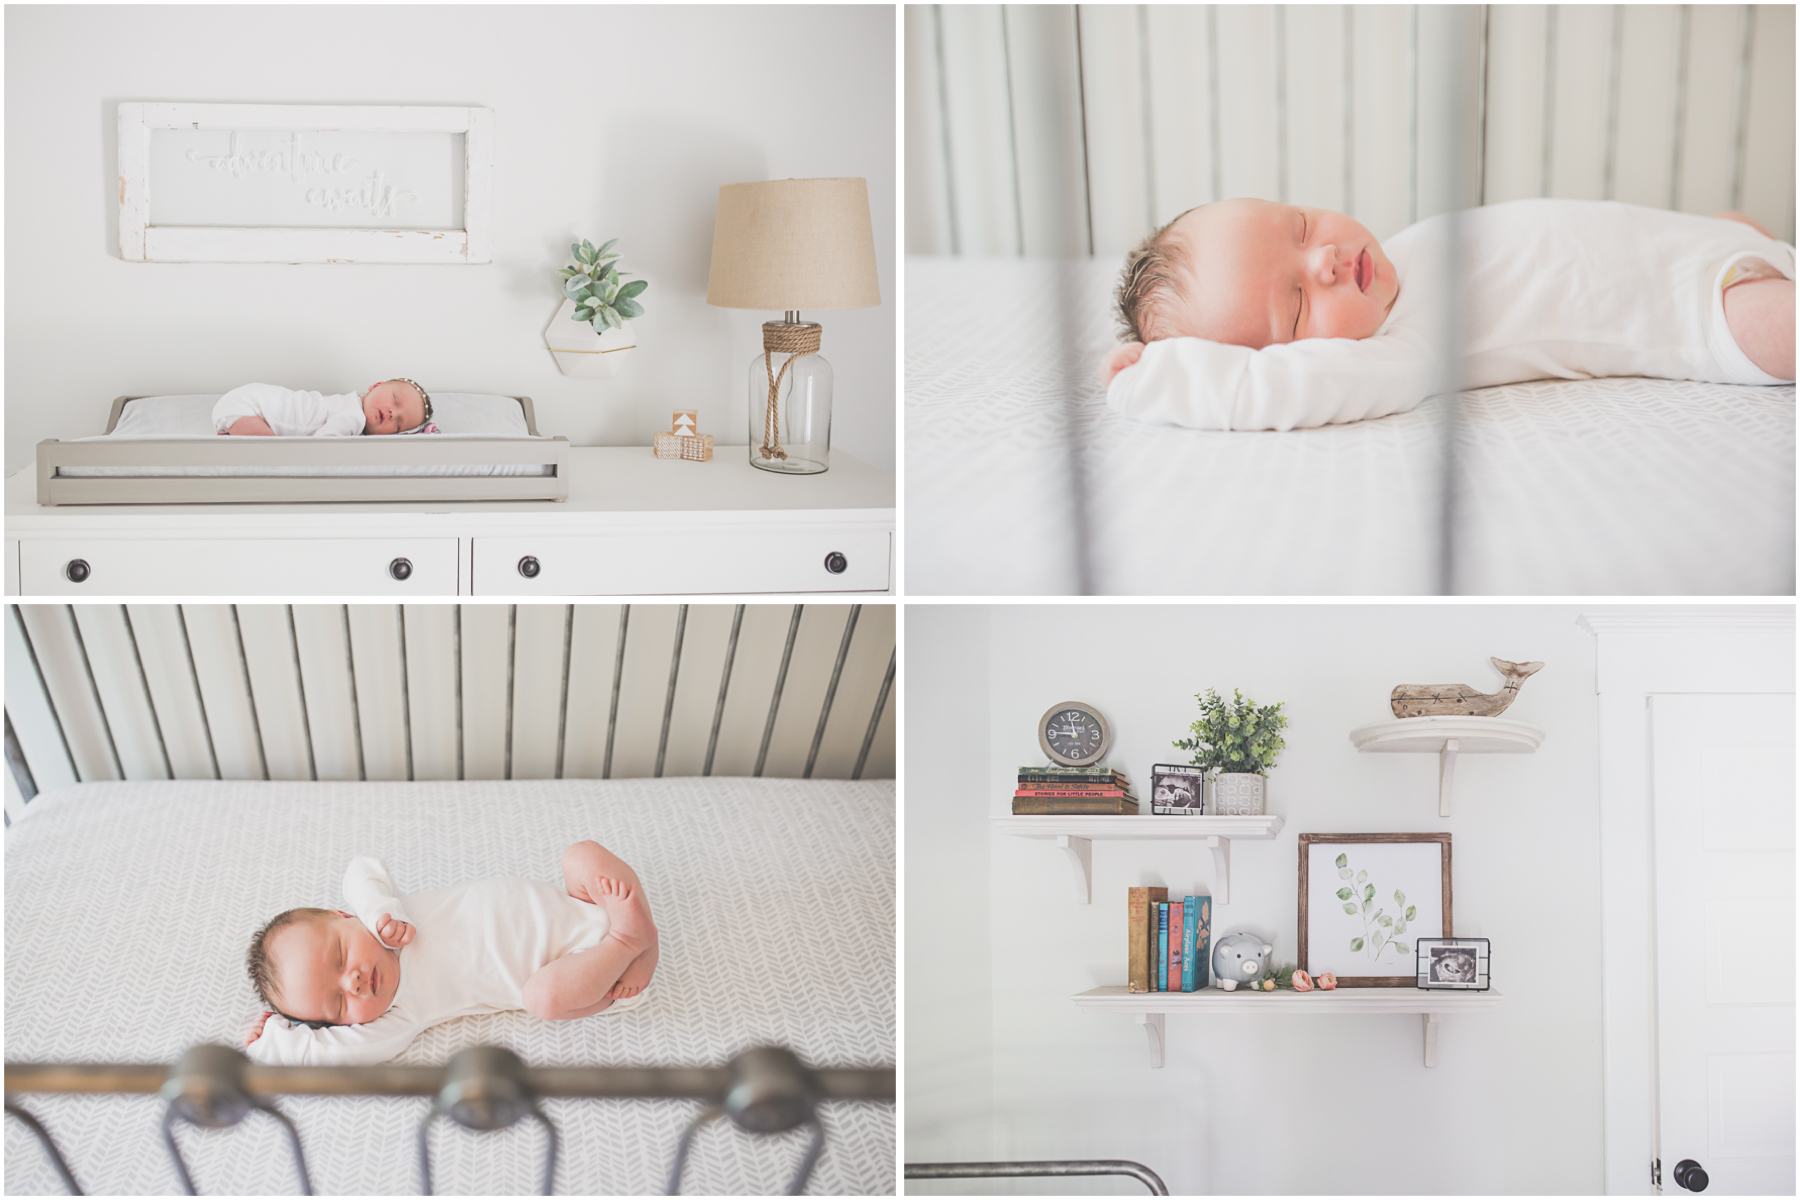 Cara Peterson Photography 1 Rockford IL Newborn Maternity Family Photographer Northern IL Lifestyle in home baby .jpg